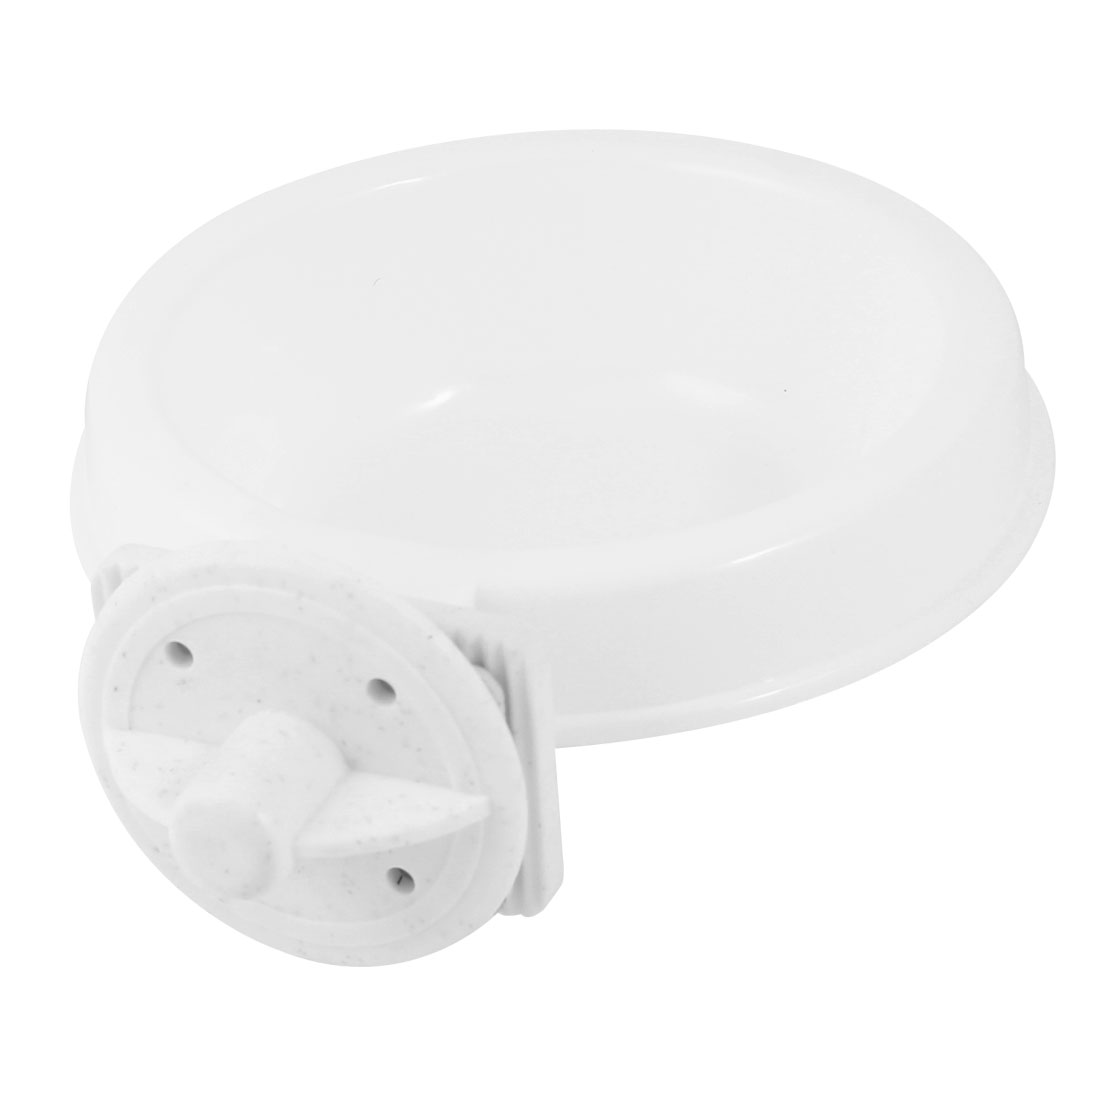 "4"" Dia 1.6"" Depth Puppy Dog Cat Pet Outdoor Cage Hanging Plastic Feed Bowl Round Shape Dinner Food Water Feeder White"